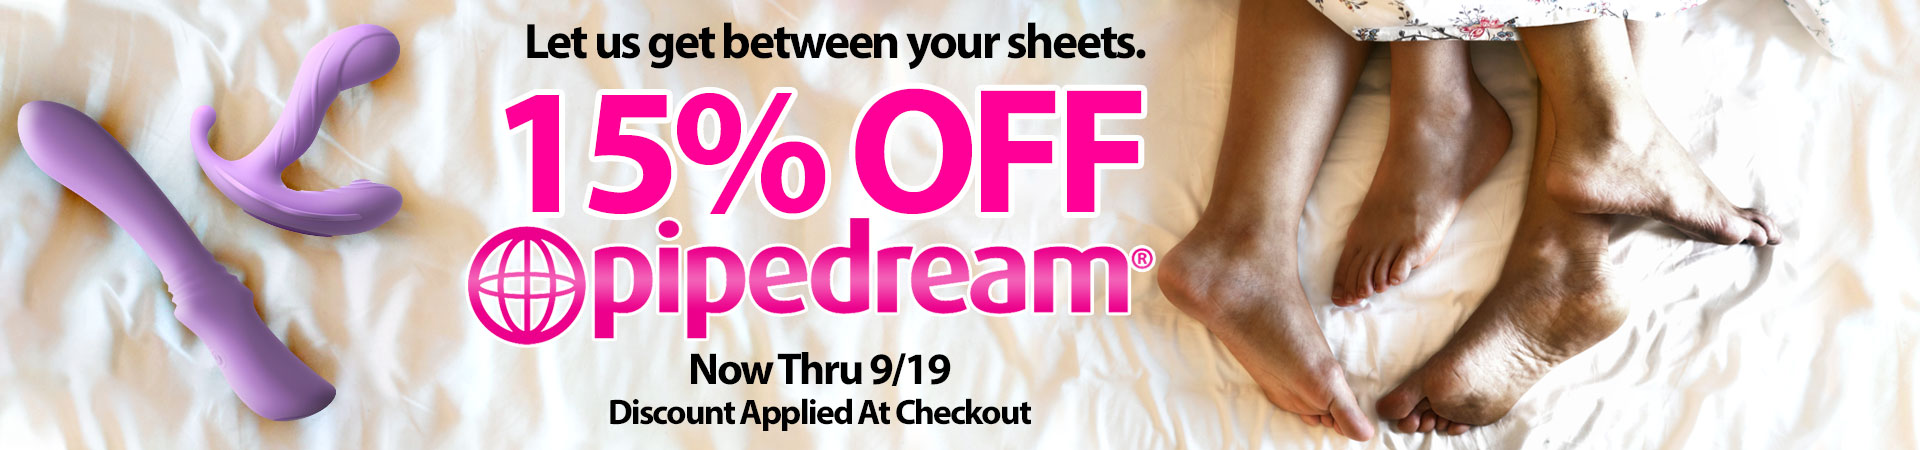 15% Off Pipedream - Now Thru 9/19 - Discount Applied At Checkout